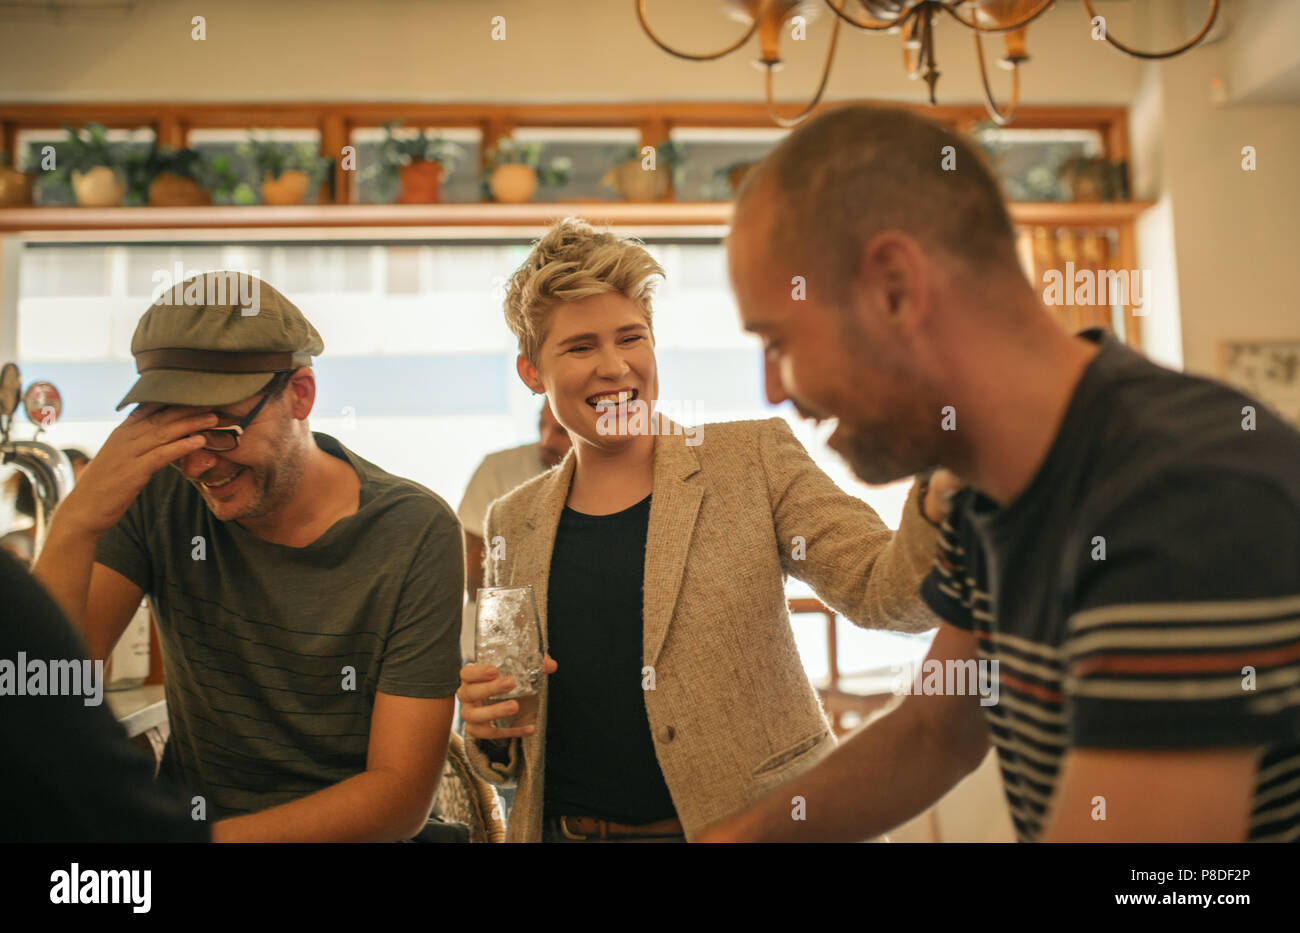 Friends laughing and having drinks together in a bar - Stock Image